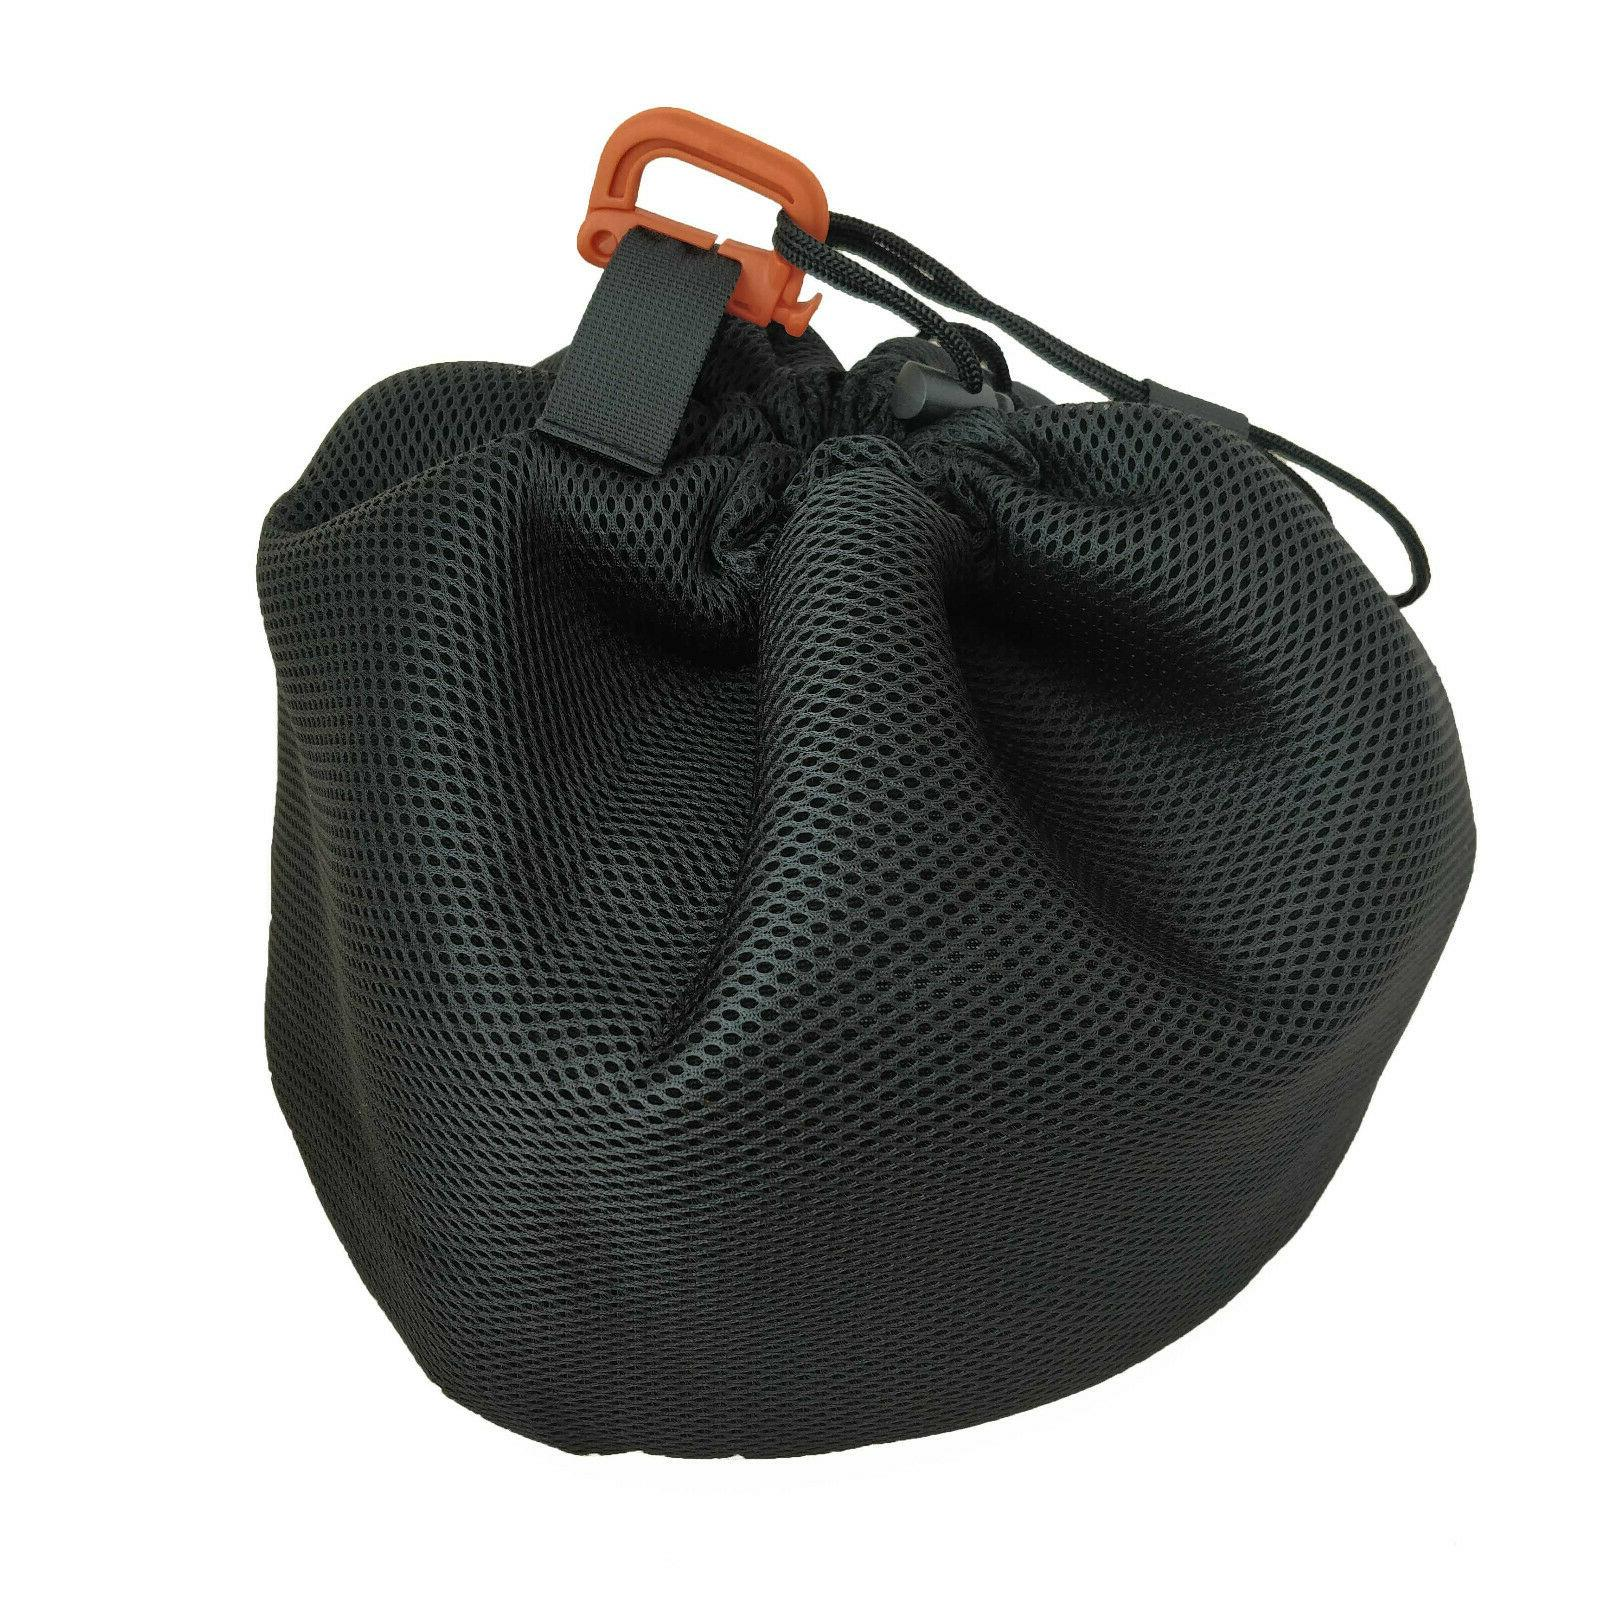 The Company Padded Mesh Case for Sports Helmets